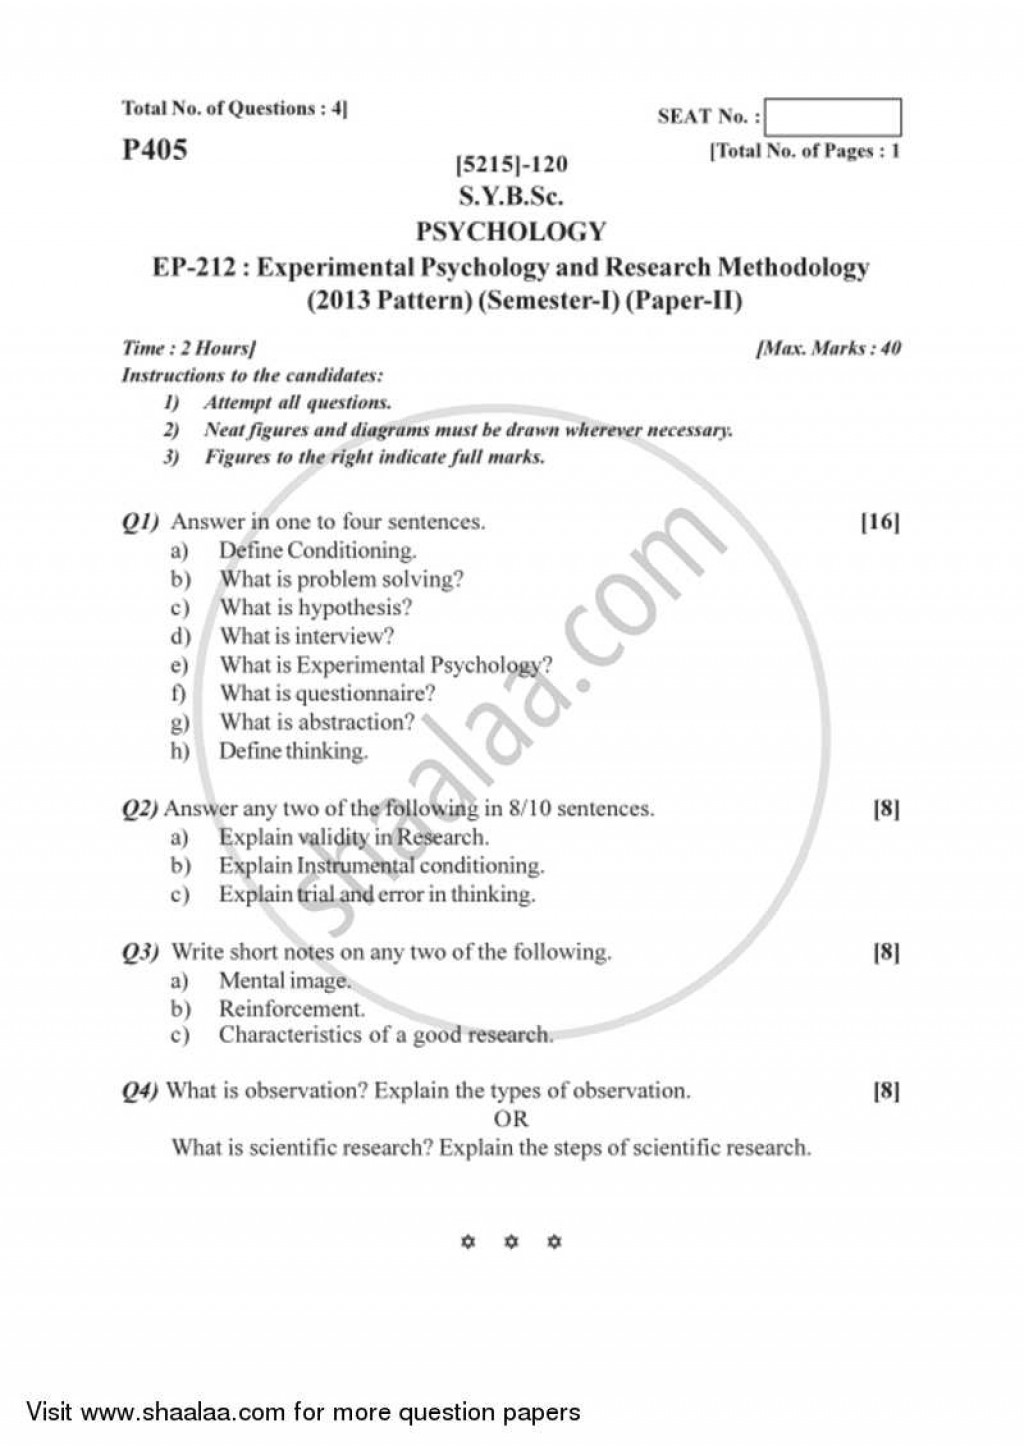 008 University Of Pune Bachelor Bsc Experimental Psychology Research Methodology Semester Sybsc Pattern 20a139127c9aa4d488dbfc2180e67df98 Paper Questions About Unique Papers Good To Ask Test Large